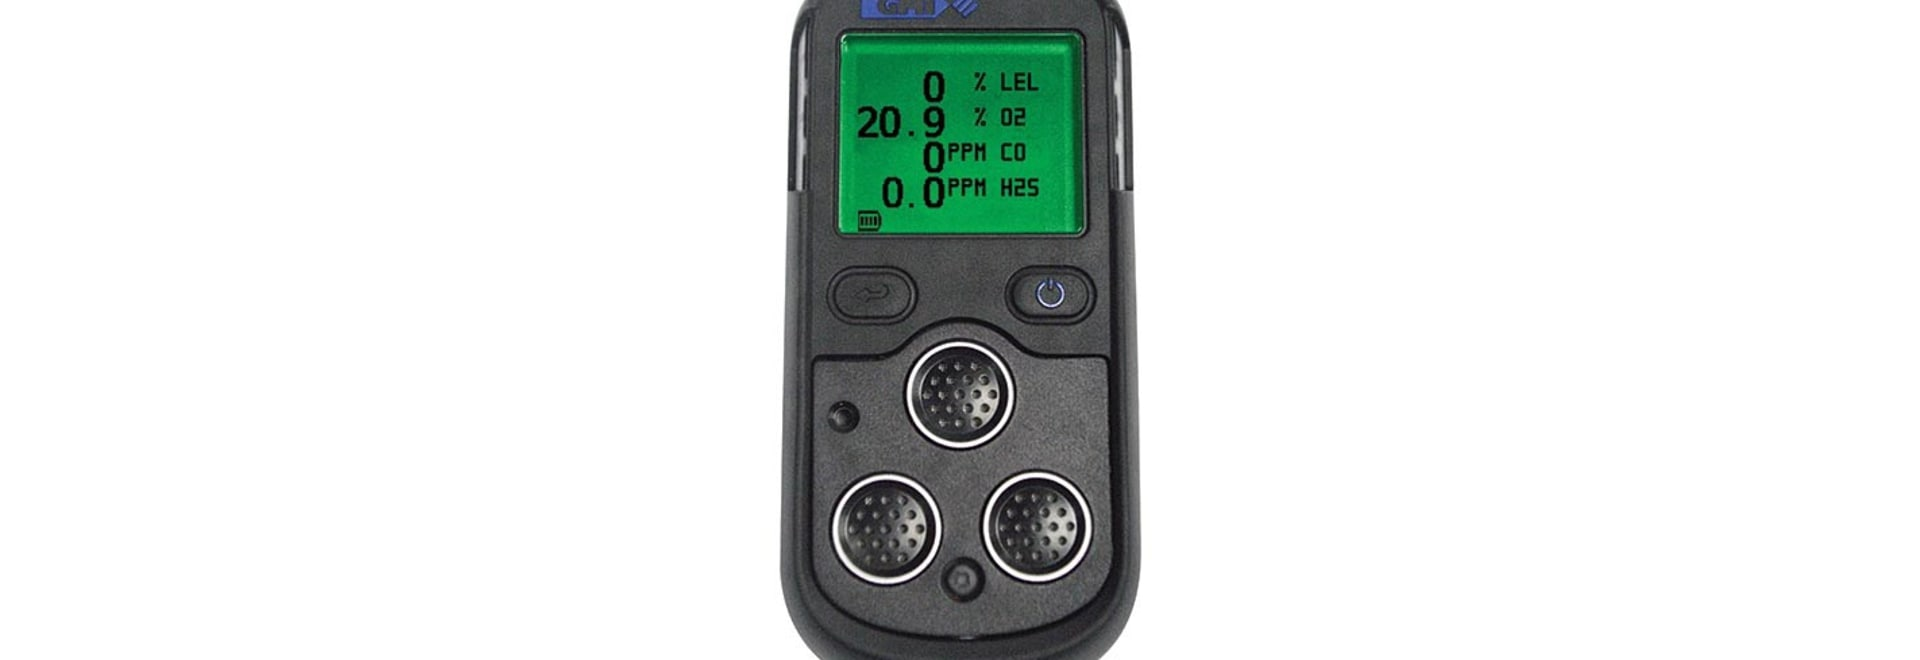 Multi-gas detection instrument from 3M Gas & Flame Detection.